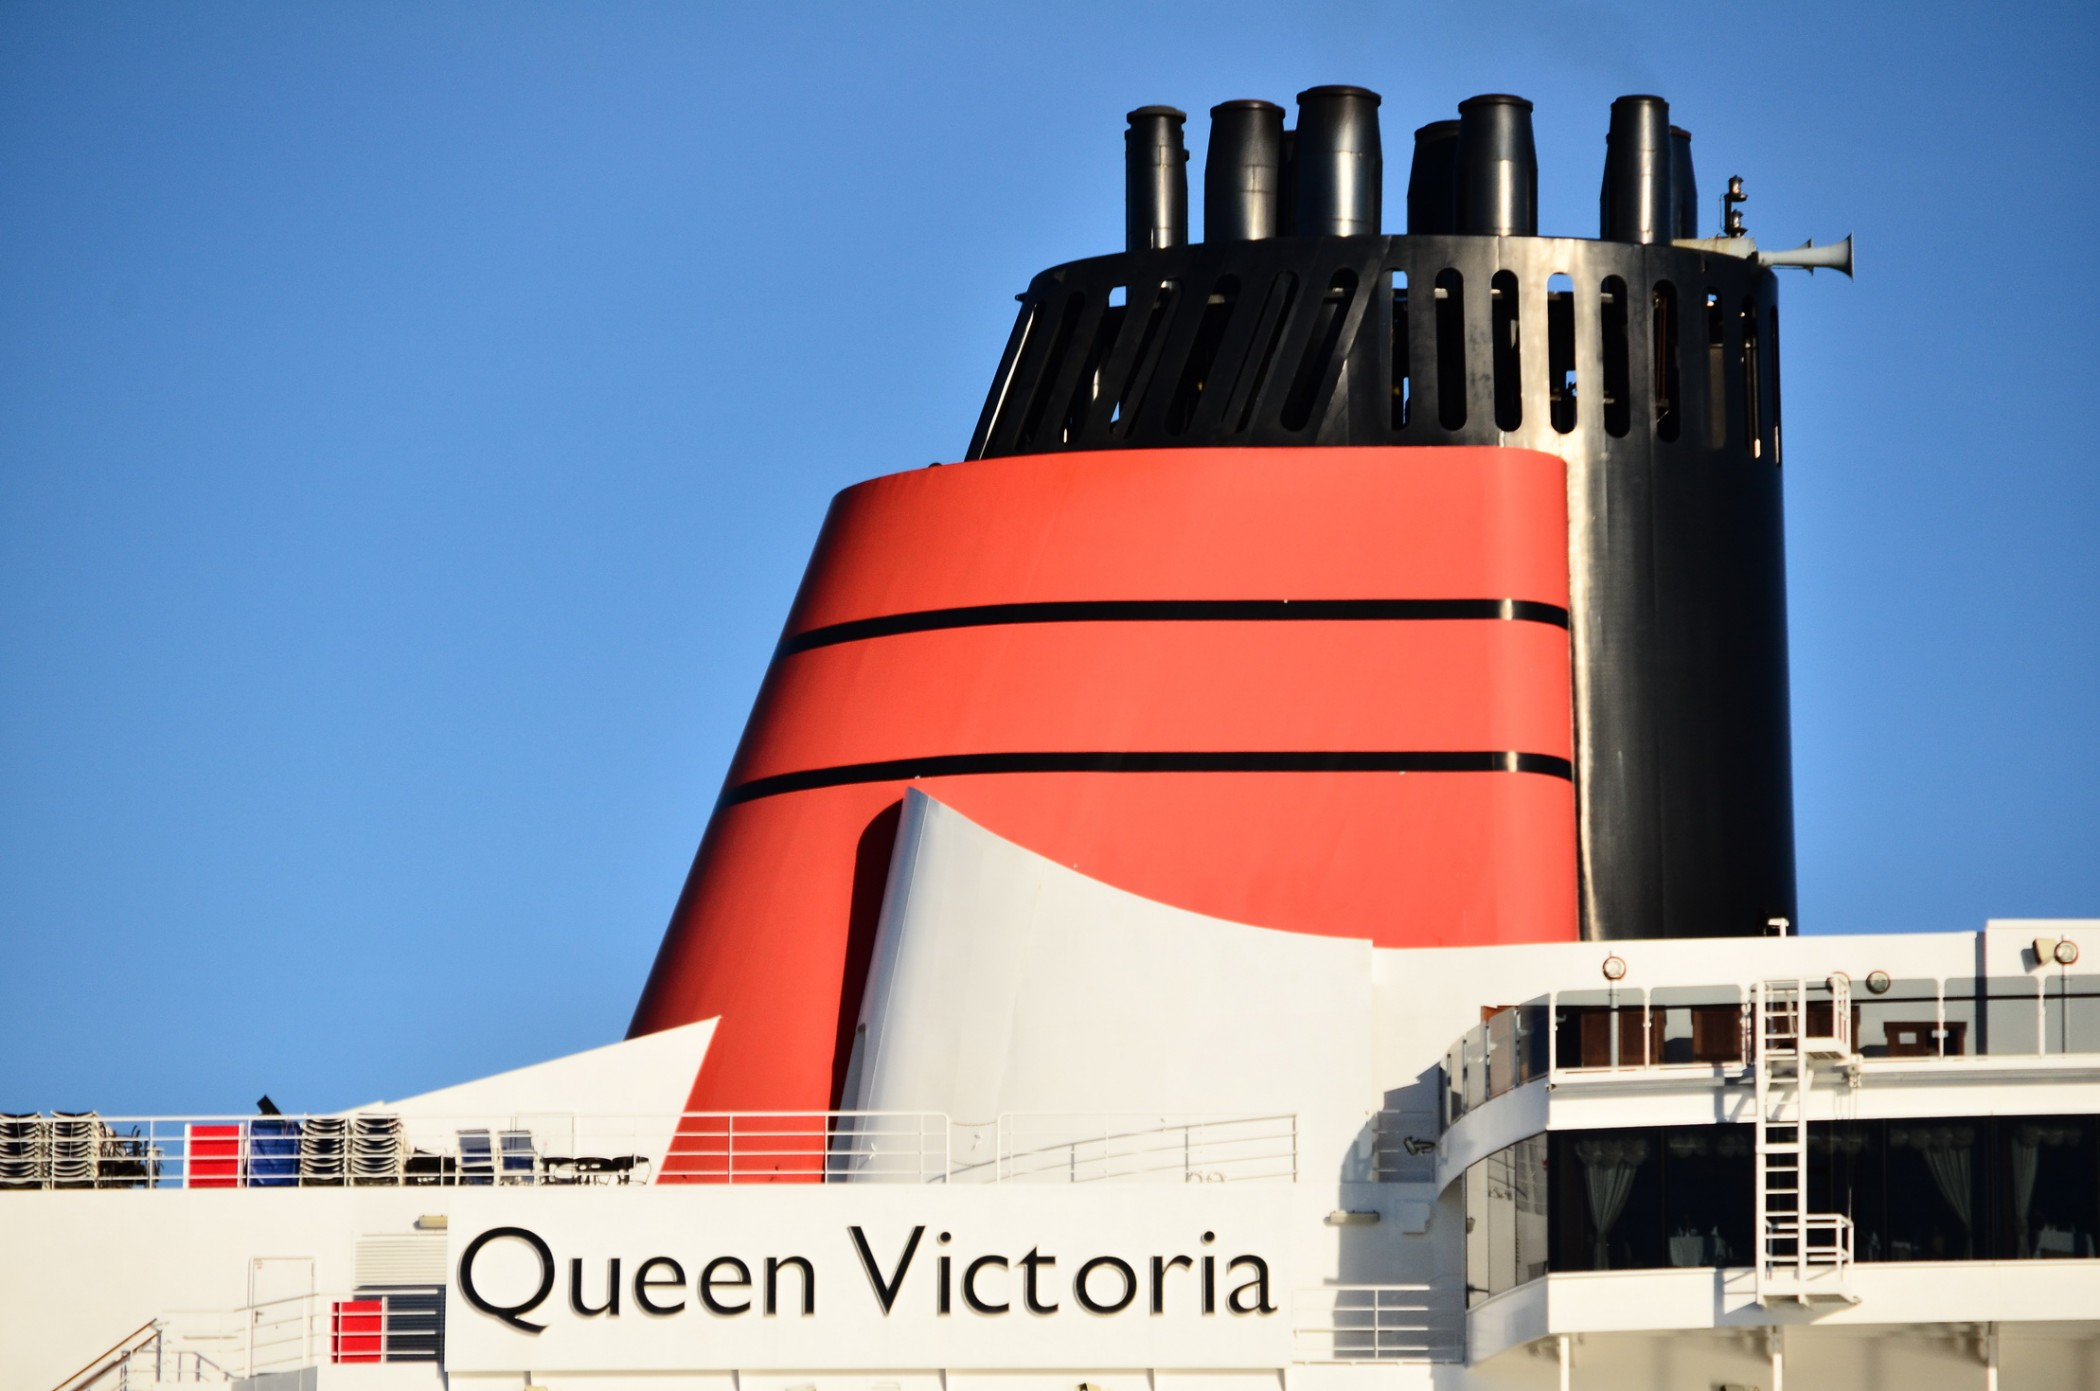 Queen Victoria funnel